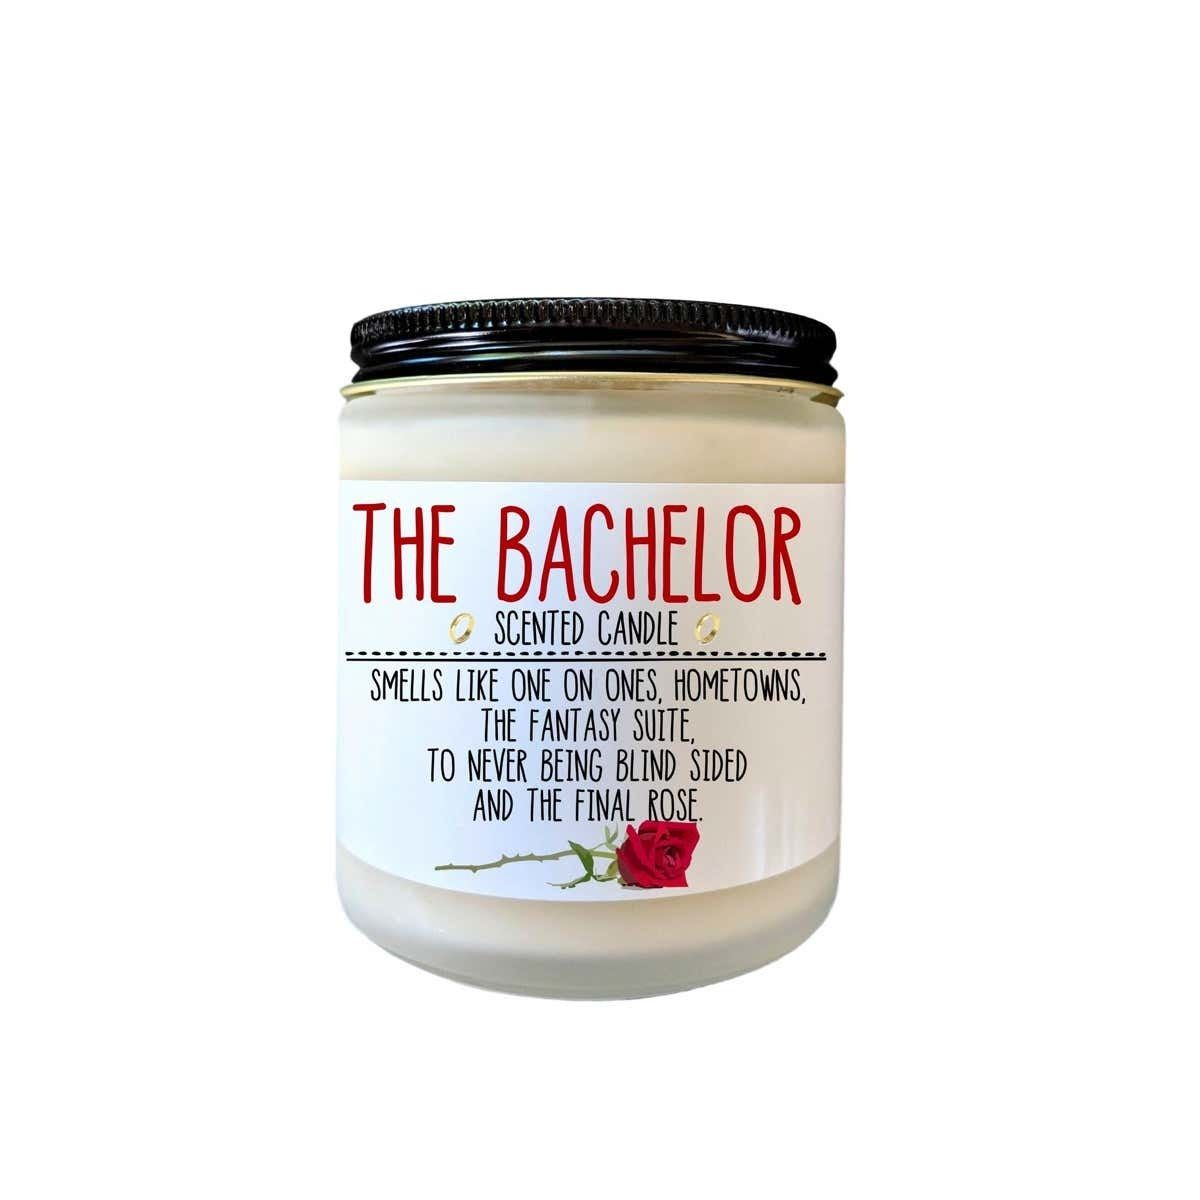 This 'The Bachelor' themed candle is the ultimate White Elephant gift